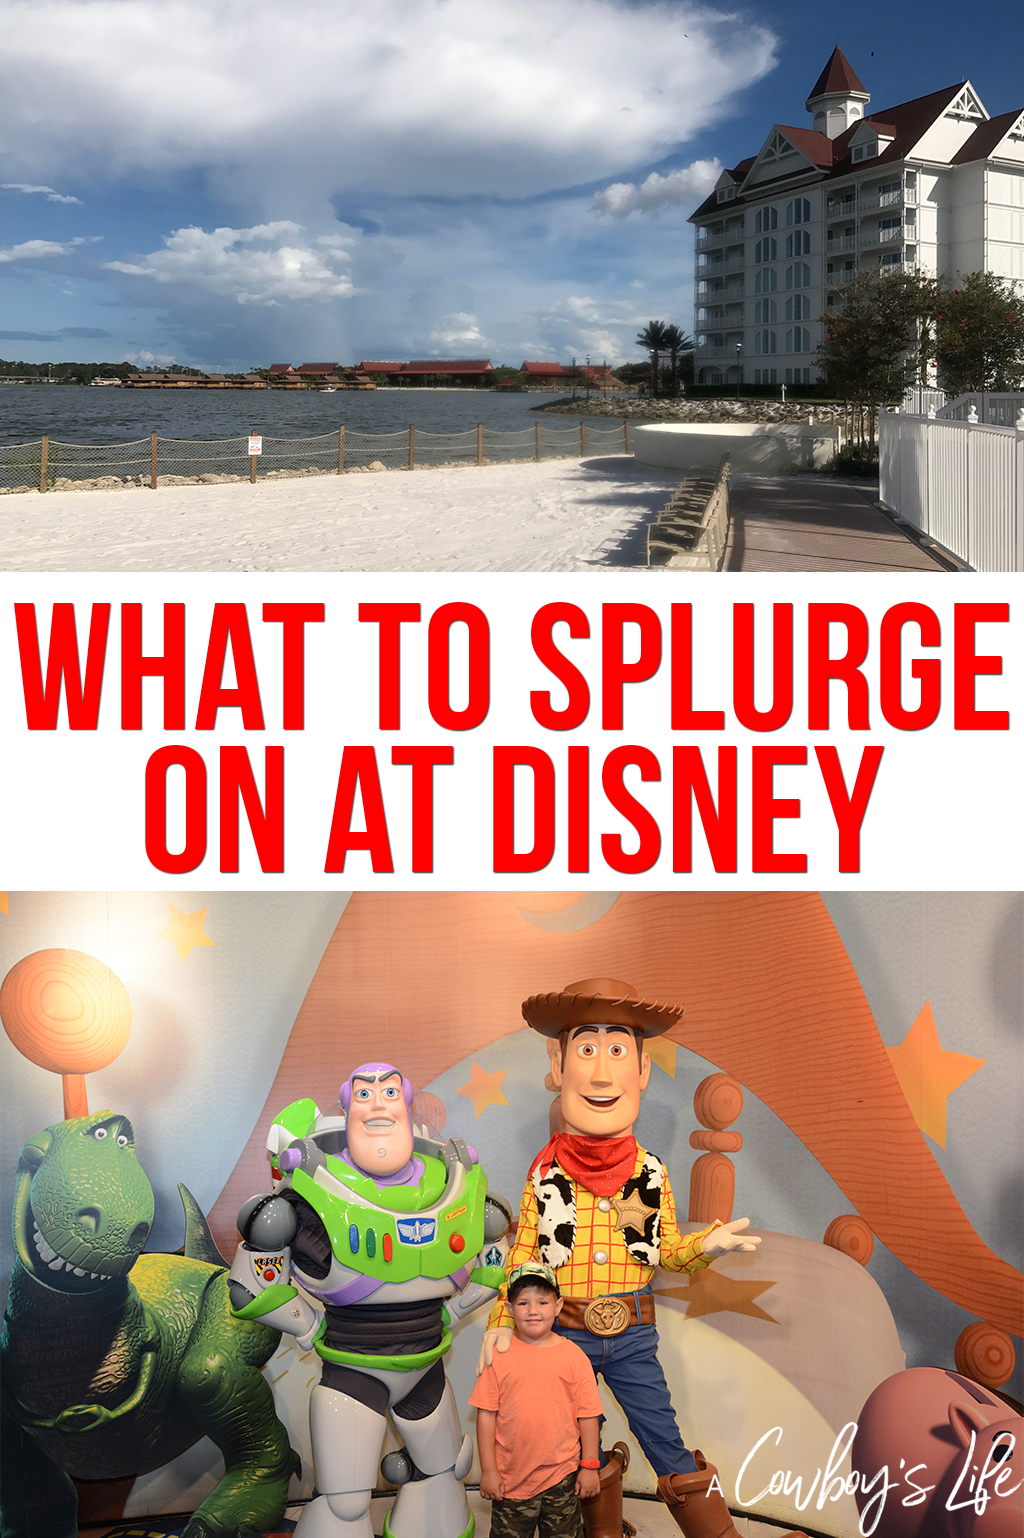 What to splurge on at Dinsey | All things Disney | Disney Vacation | Disney Vacation Planning | Family Vacation |#disney #travelbudget #disneyvacation